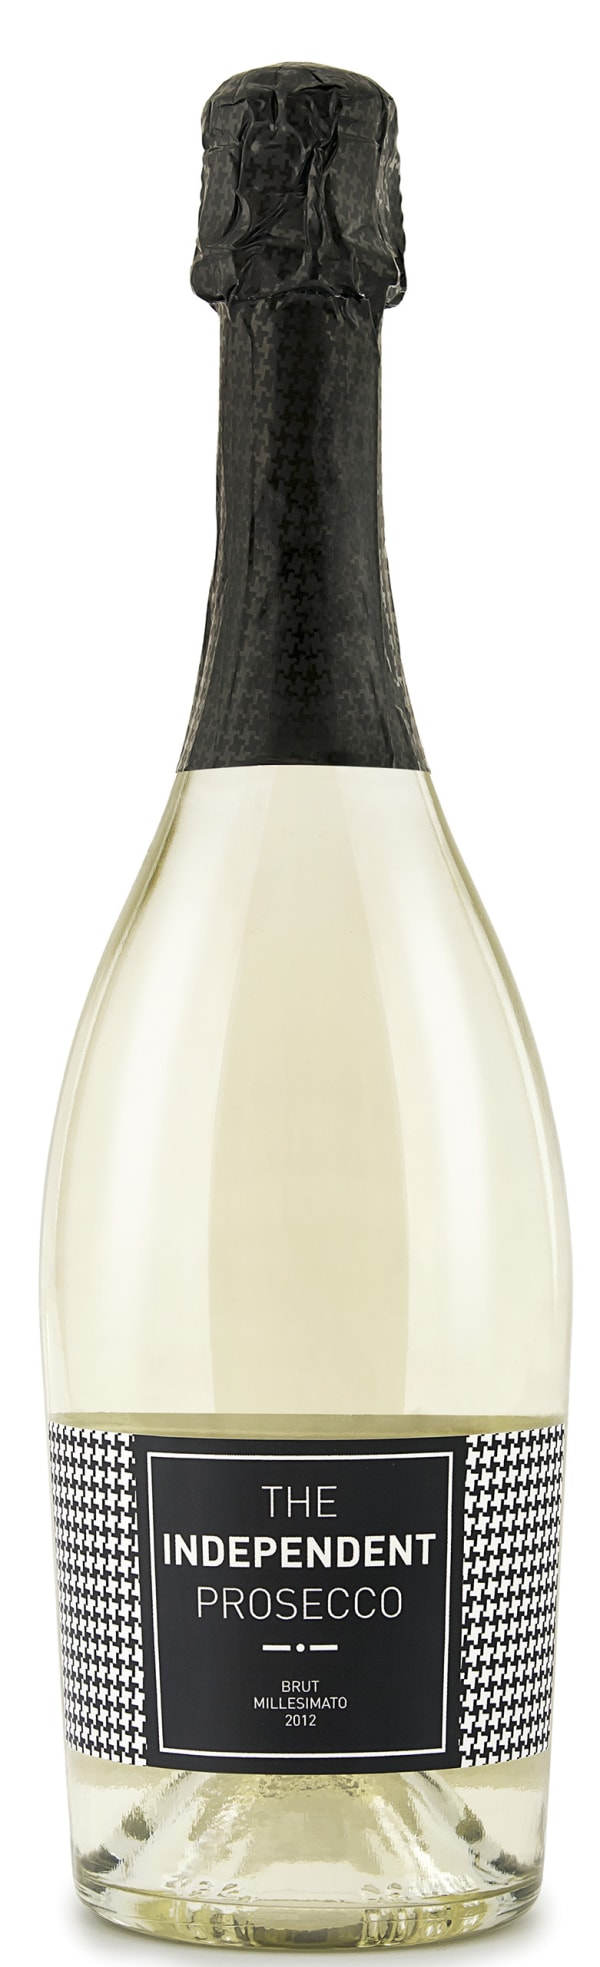 The Independent Prosecco Brut 2016